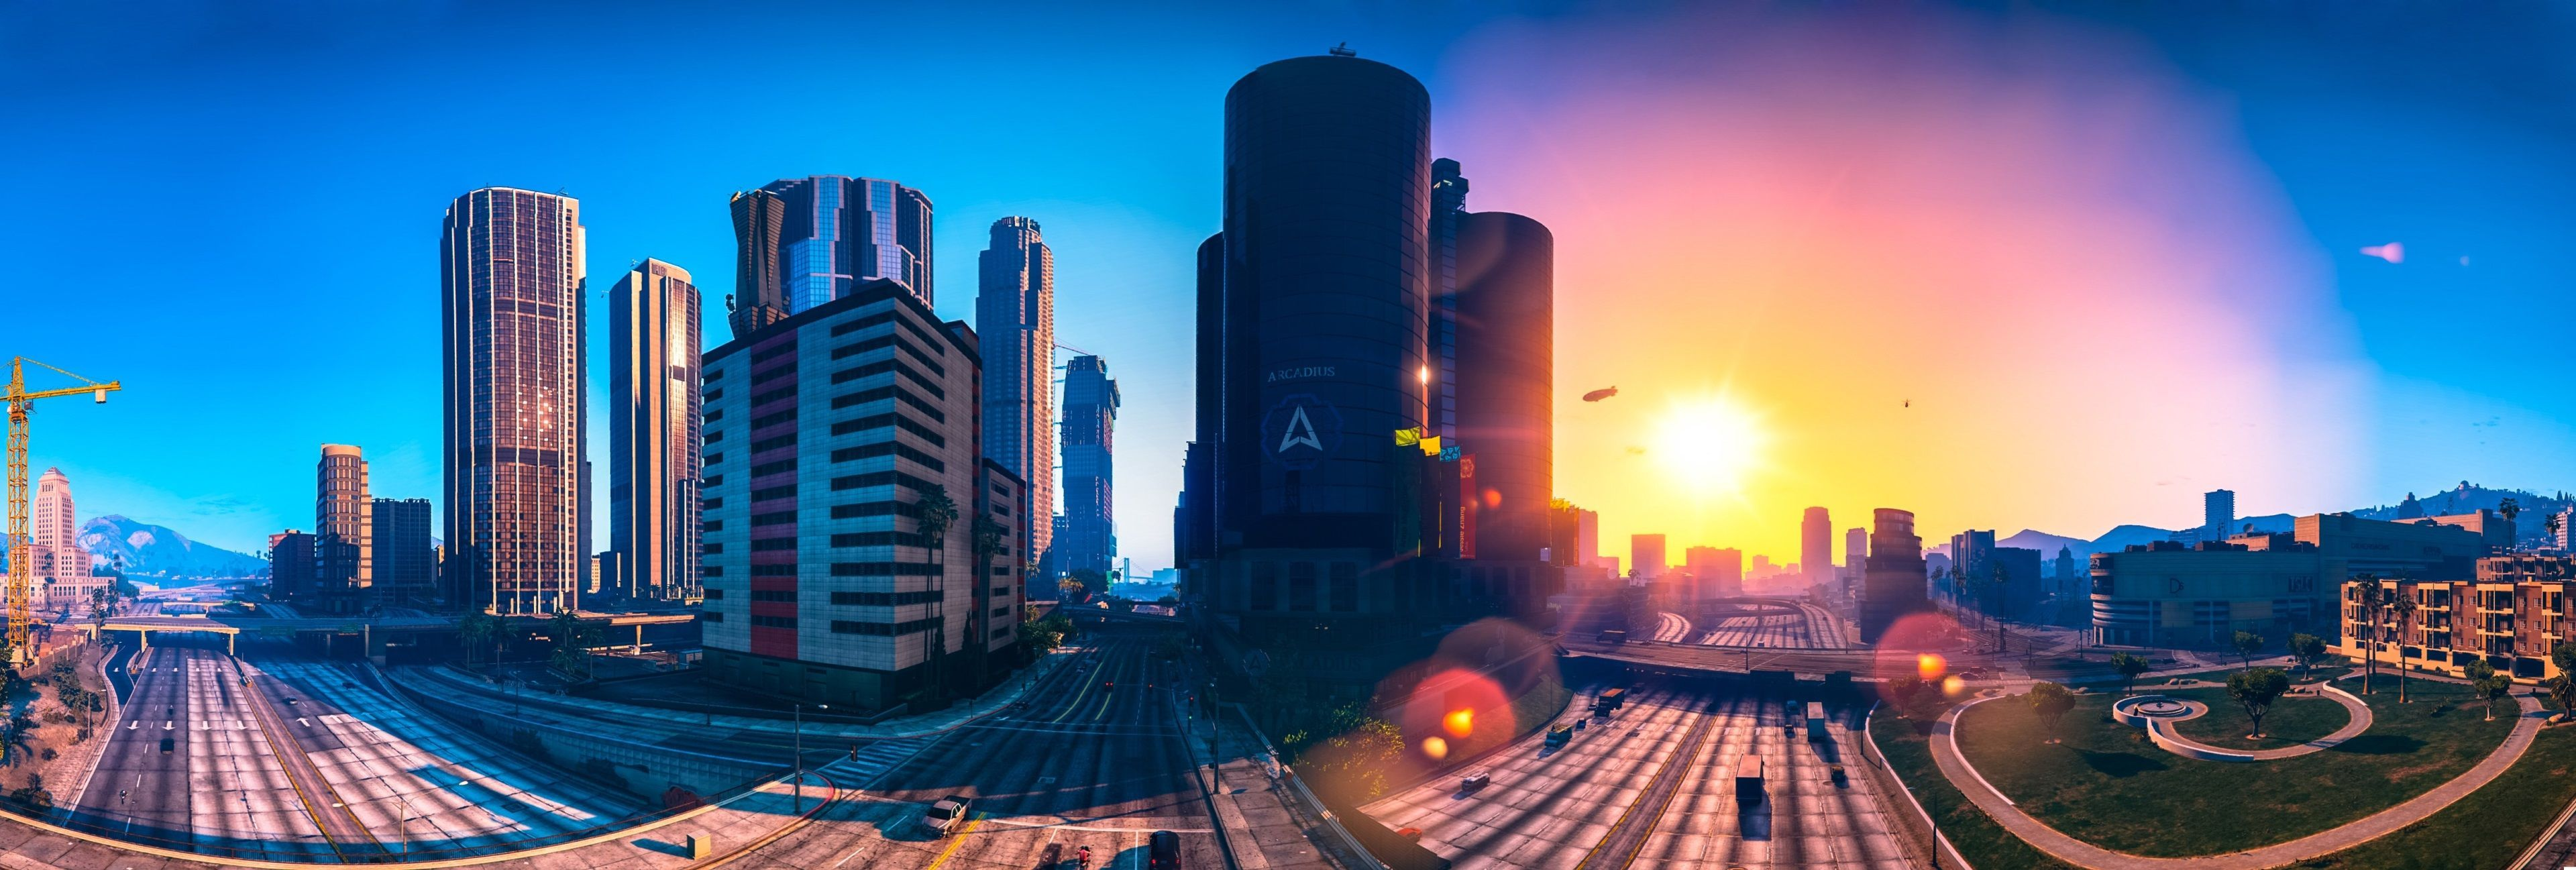 Top Free 4K GTA 5 Backgrounds